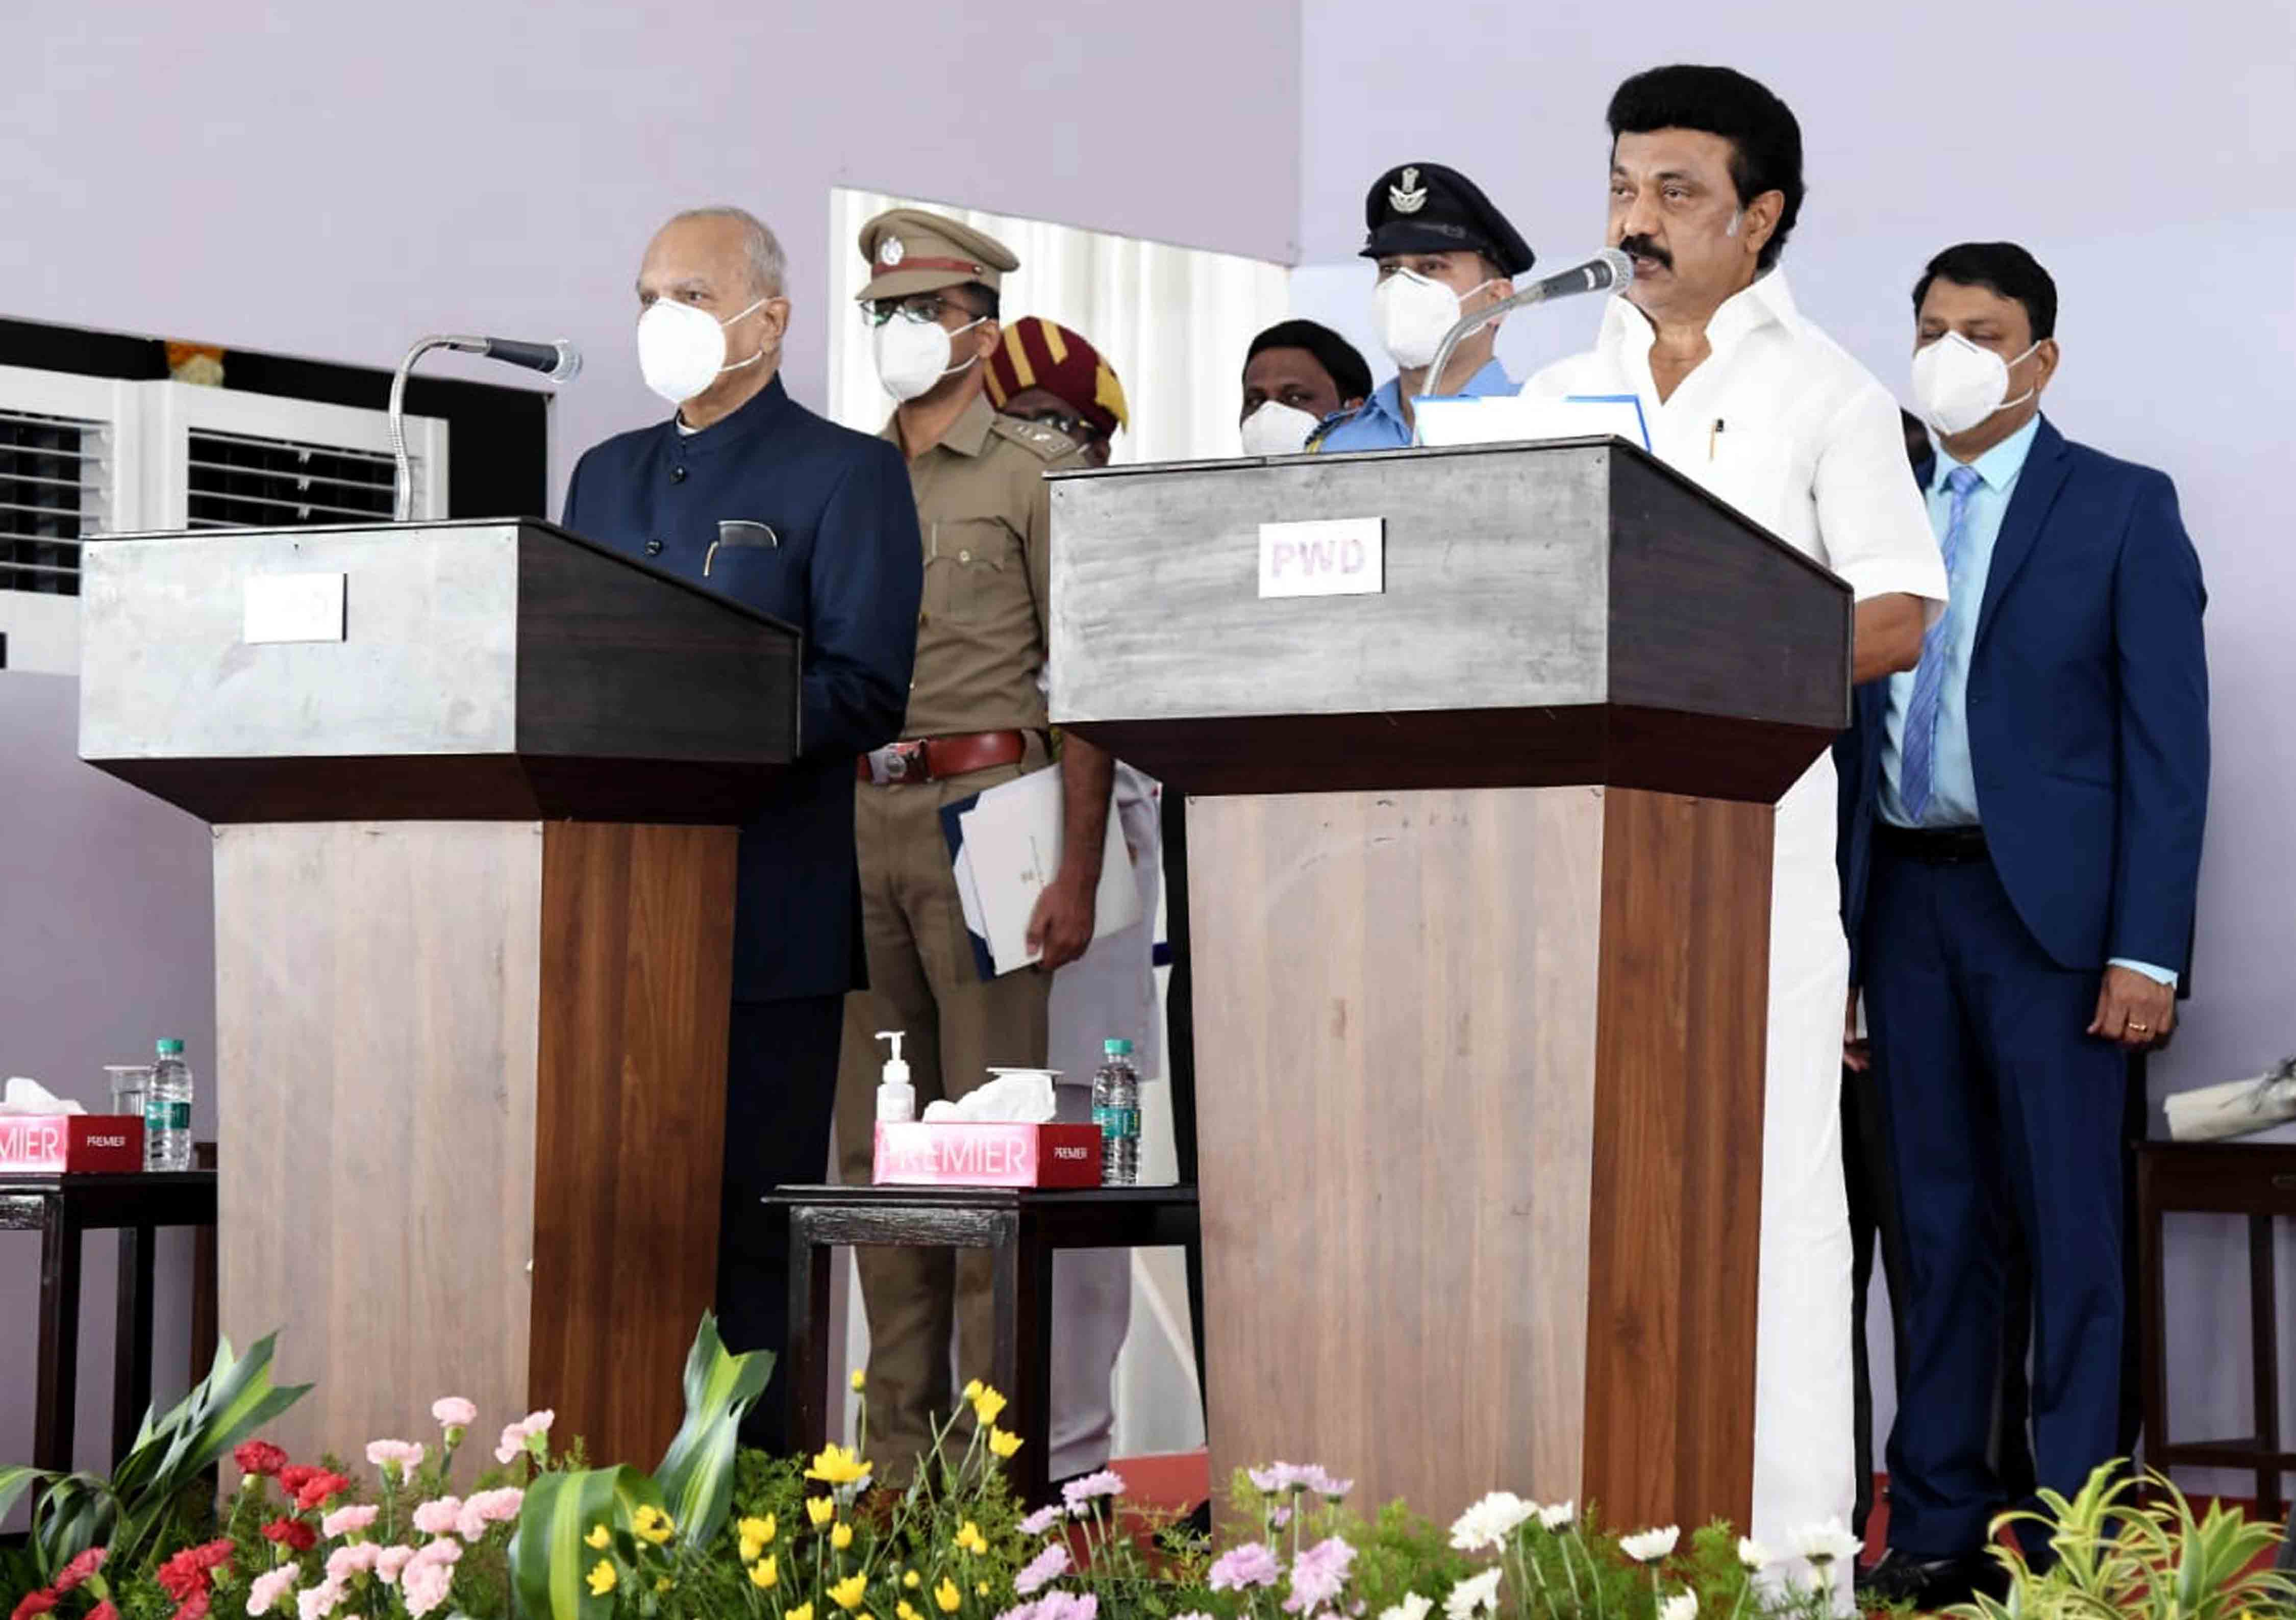 Governor, Banwarilal Purohit administered the oath of office and secrecy to Muthuvel Karunanidhi Stalin as Chief Minister of Tamil Nadu at Raj Bhavan, in Chennai on Friday. (UNI)